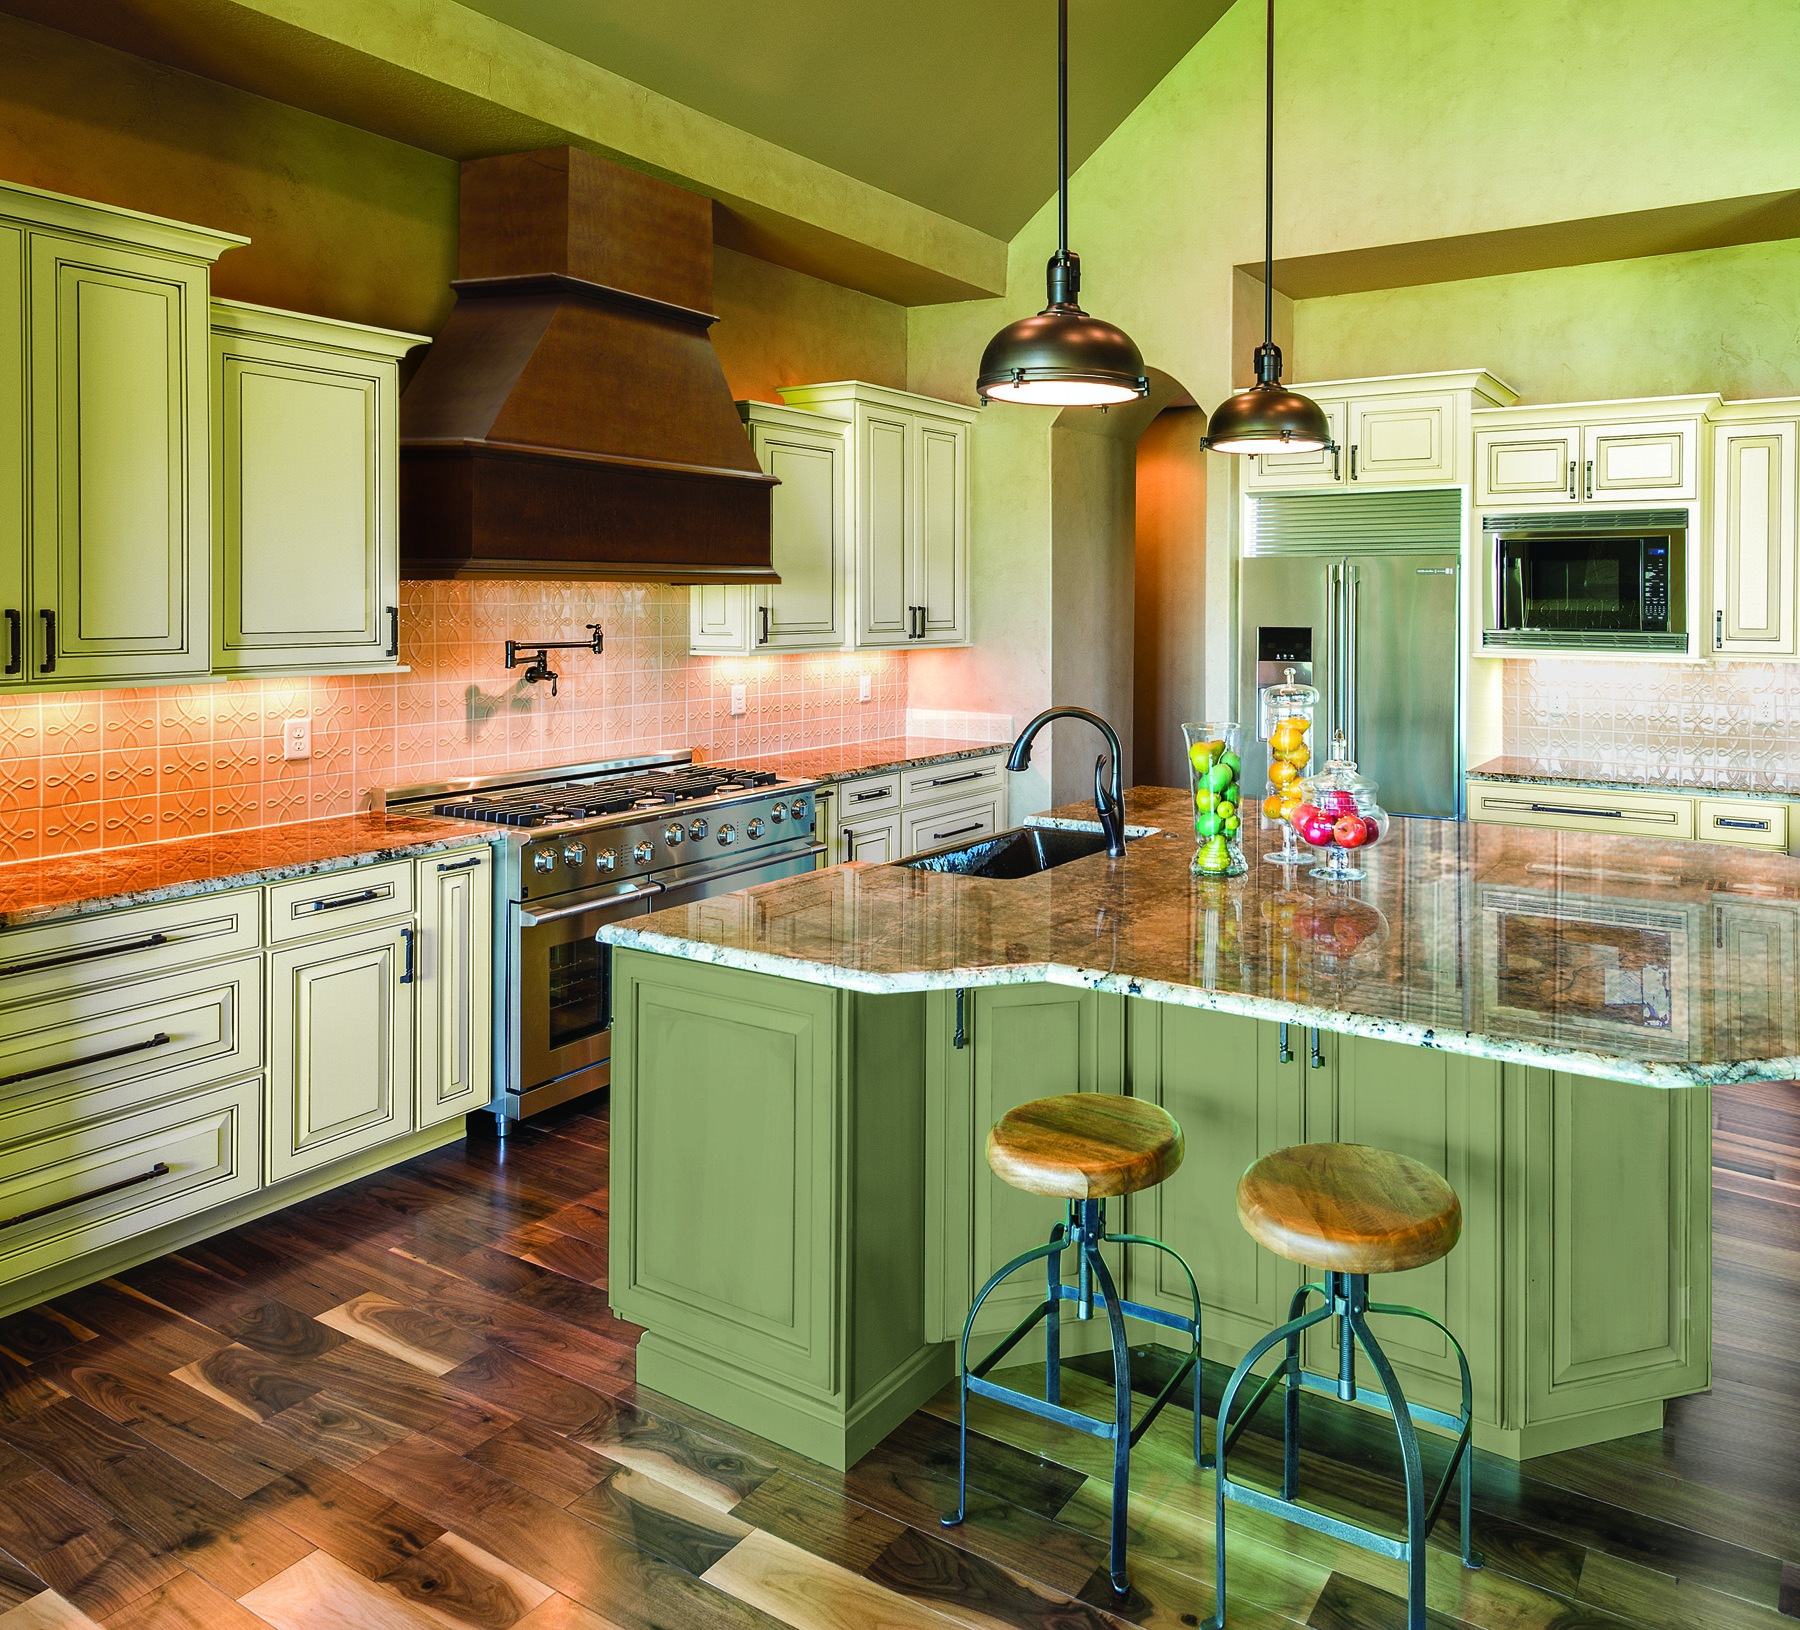 new paint colors bring high fashion home to kitchen